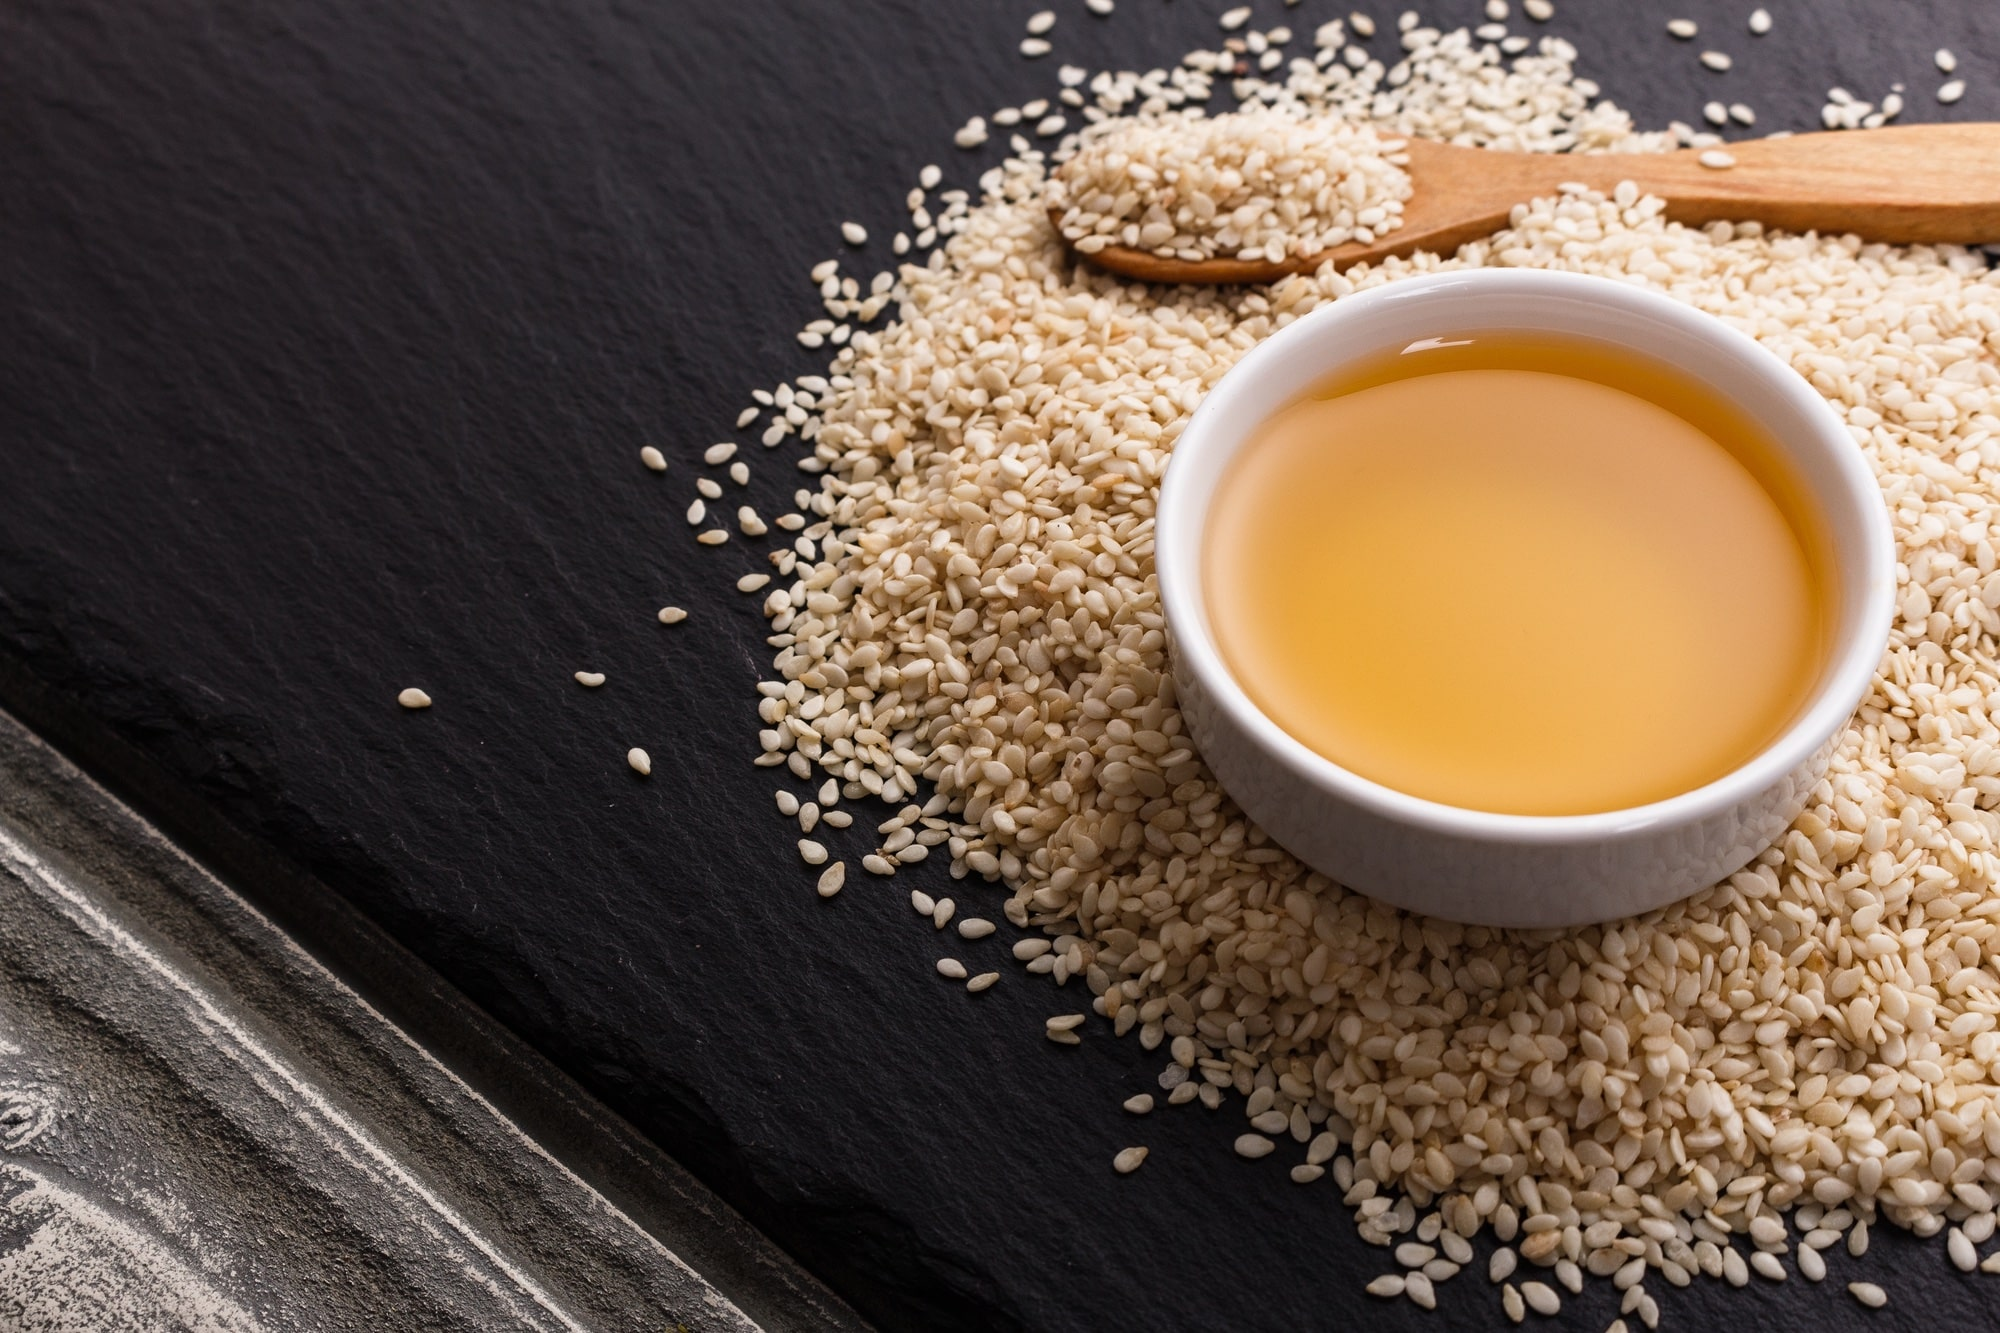 Toasted sesame oil vs. sesame oil